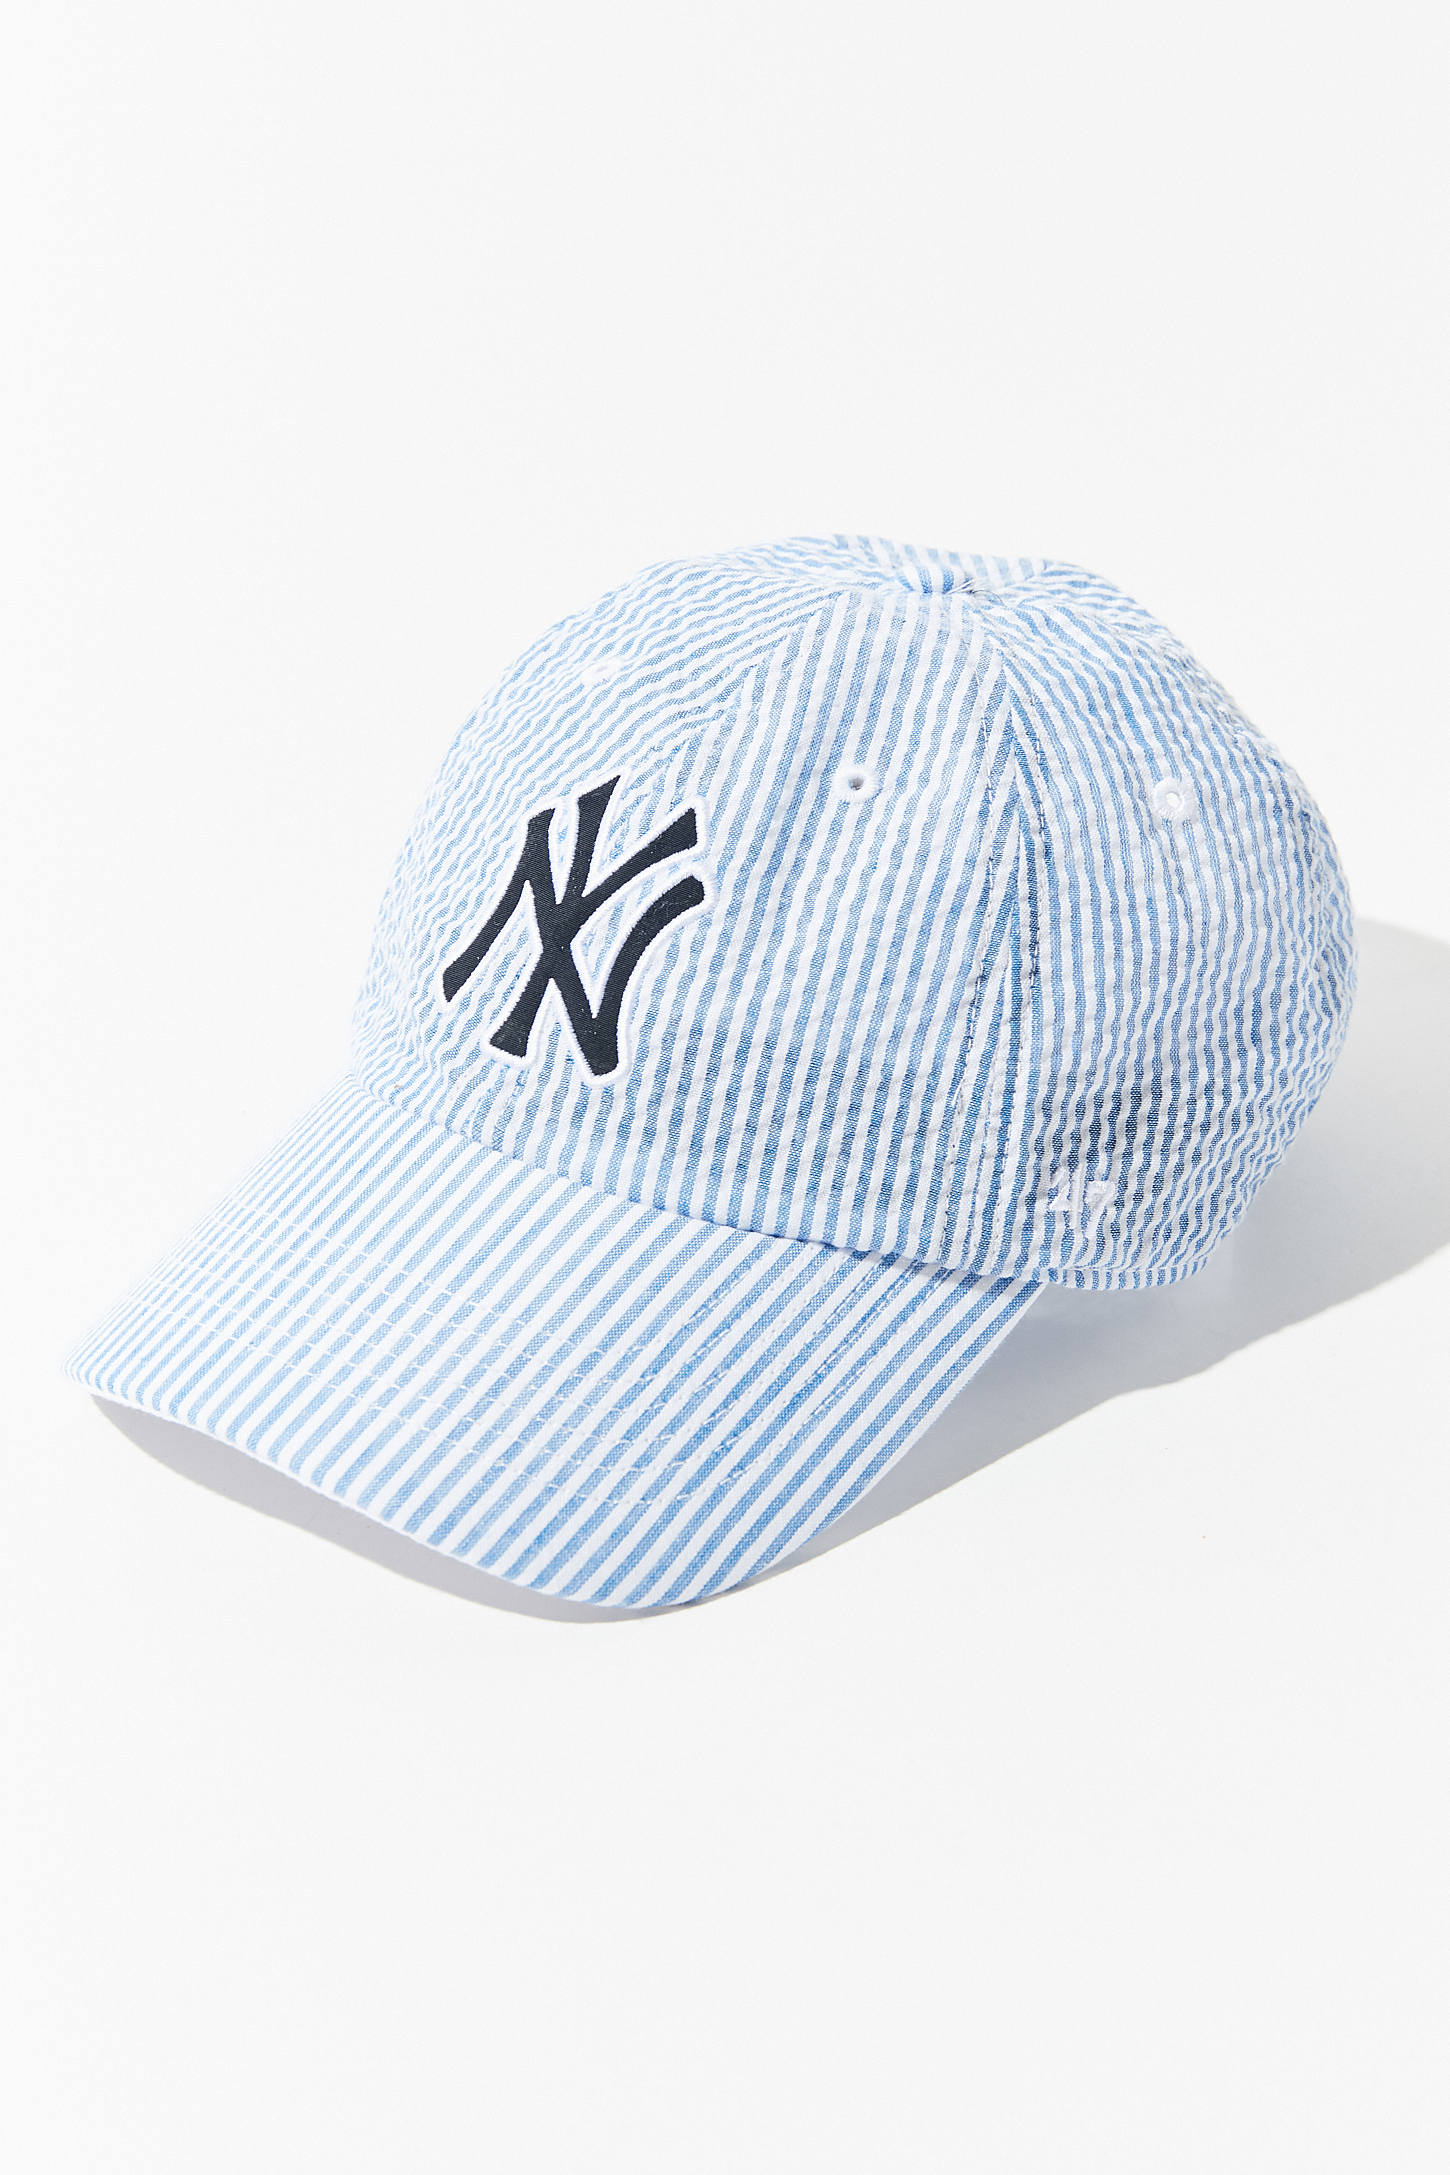 NY Yankees Baseball Hat